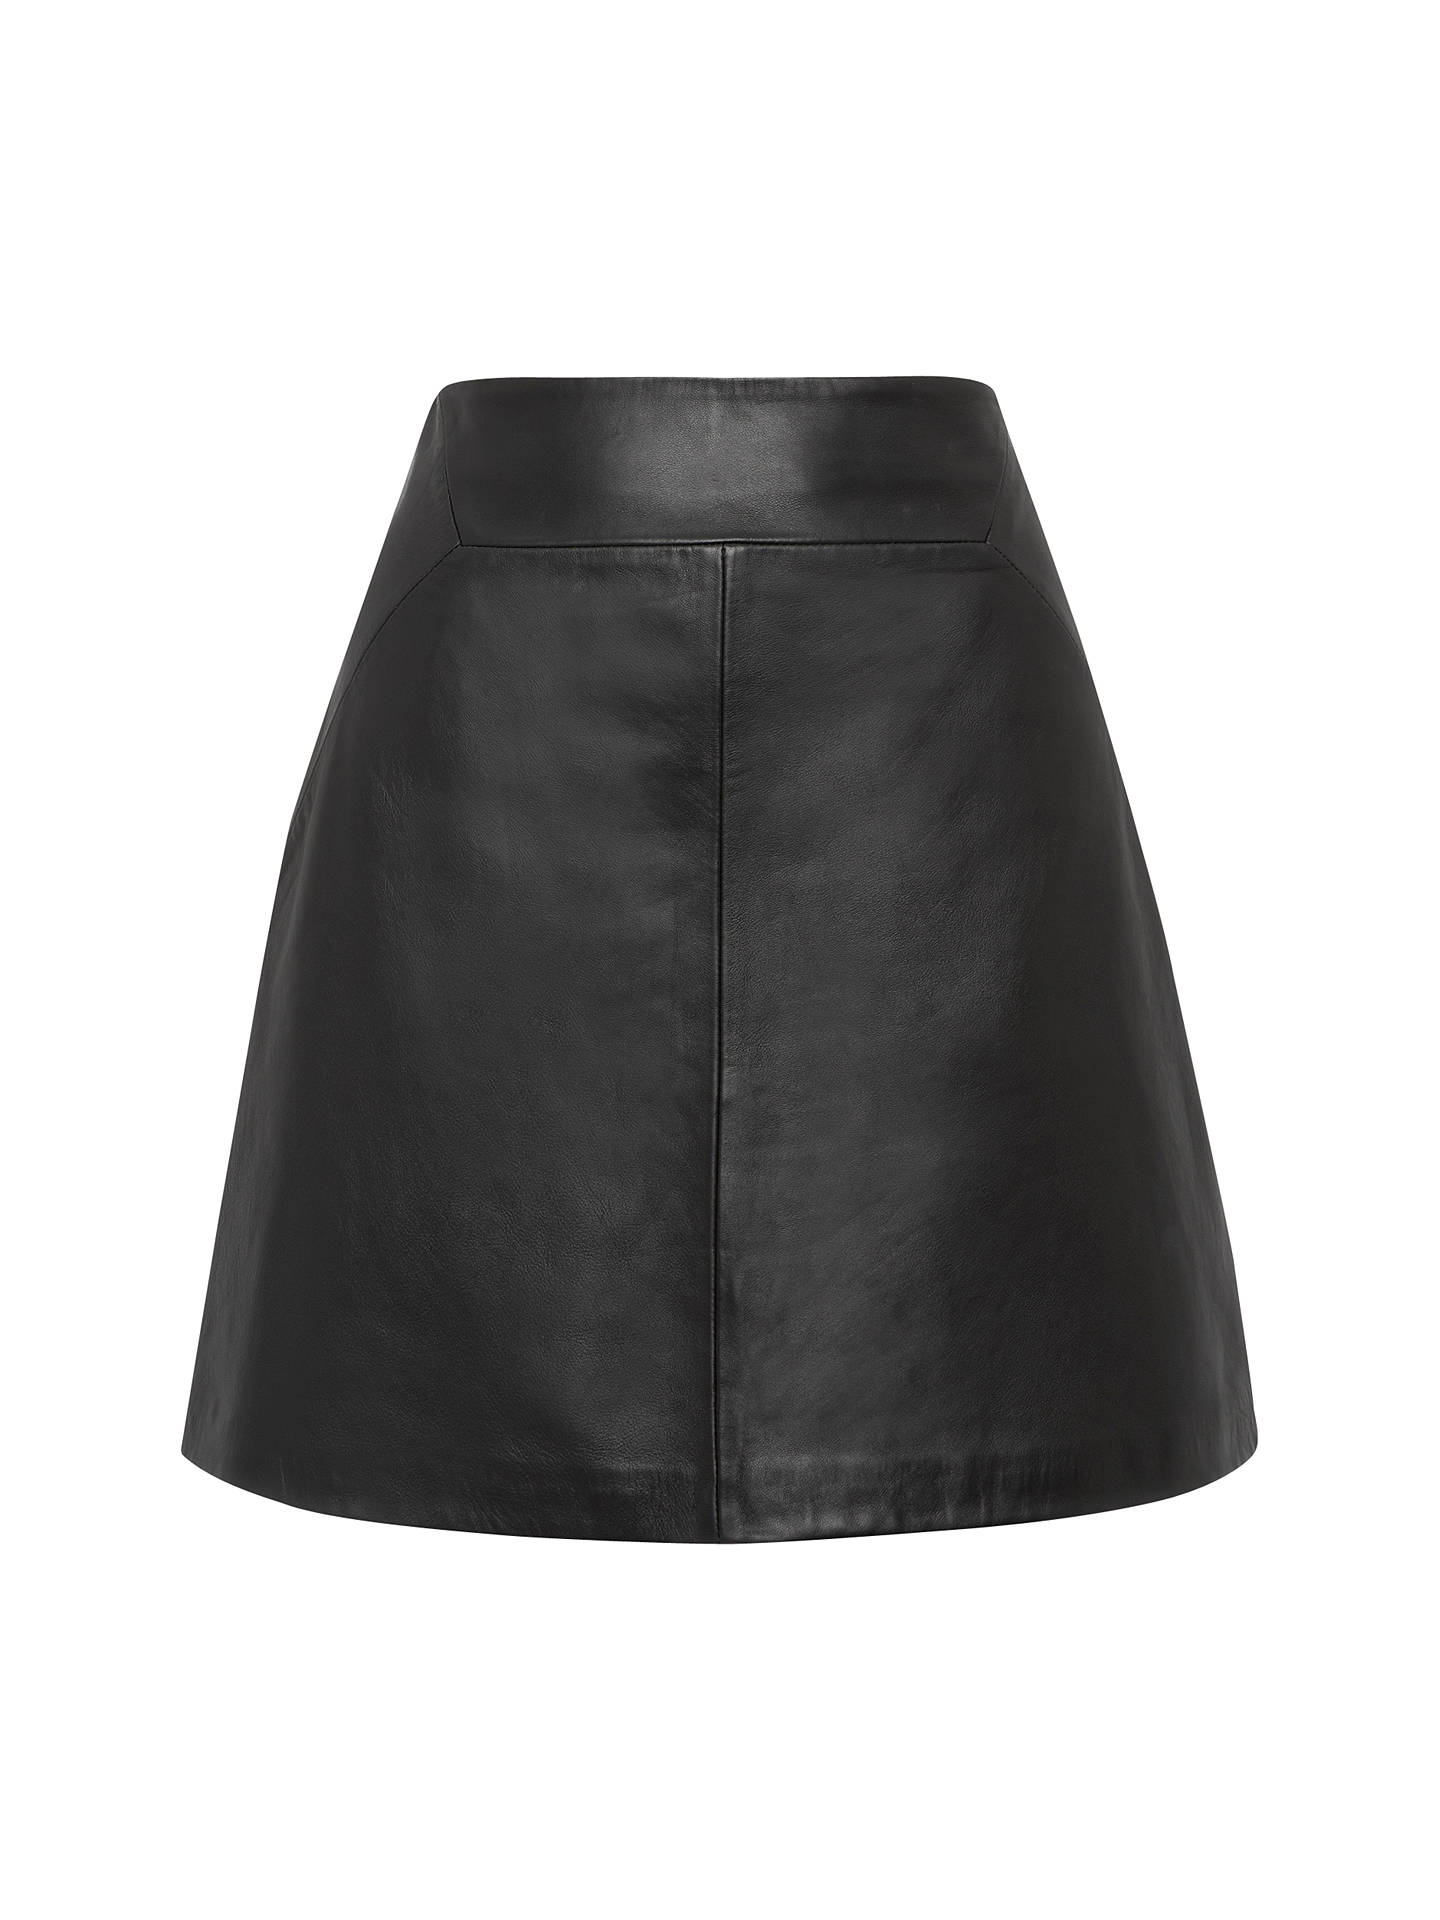 d1f6dfa57b5 Buy Whistles Leather A-Line Skirt